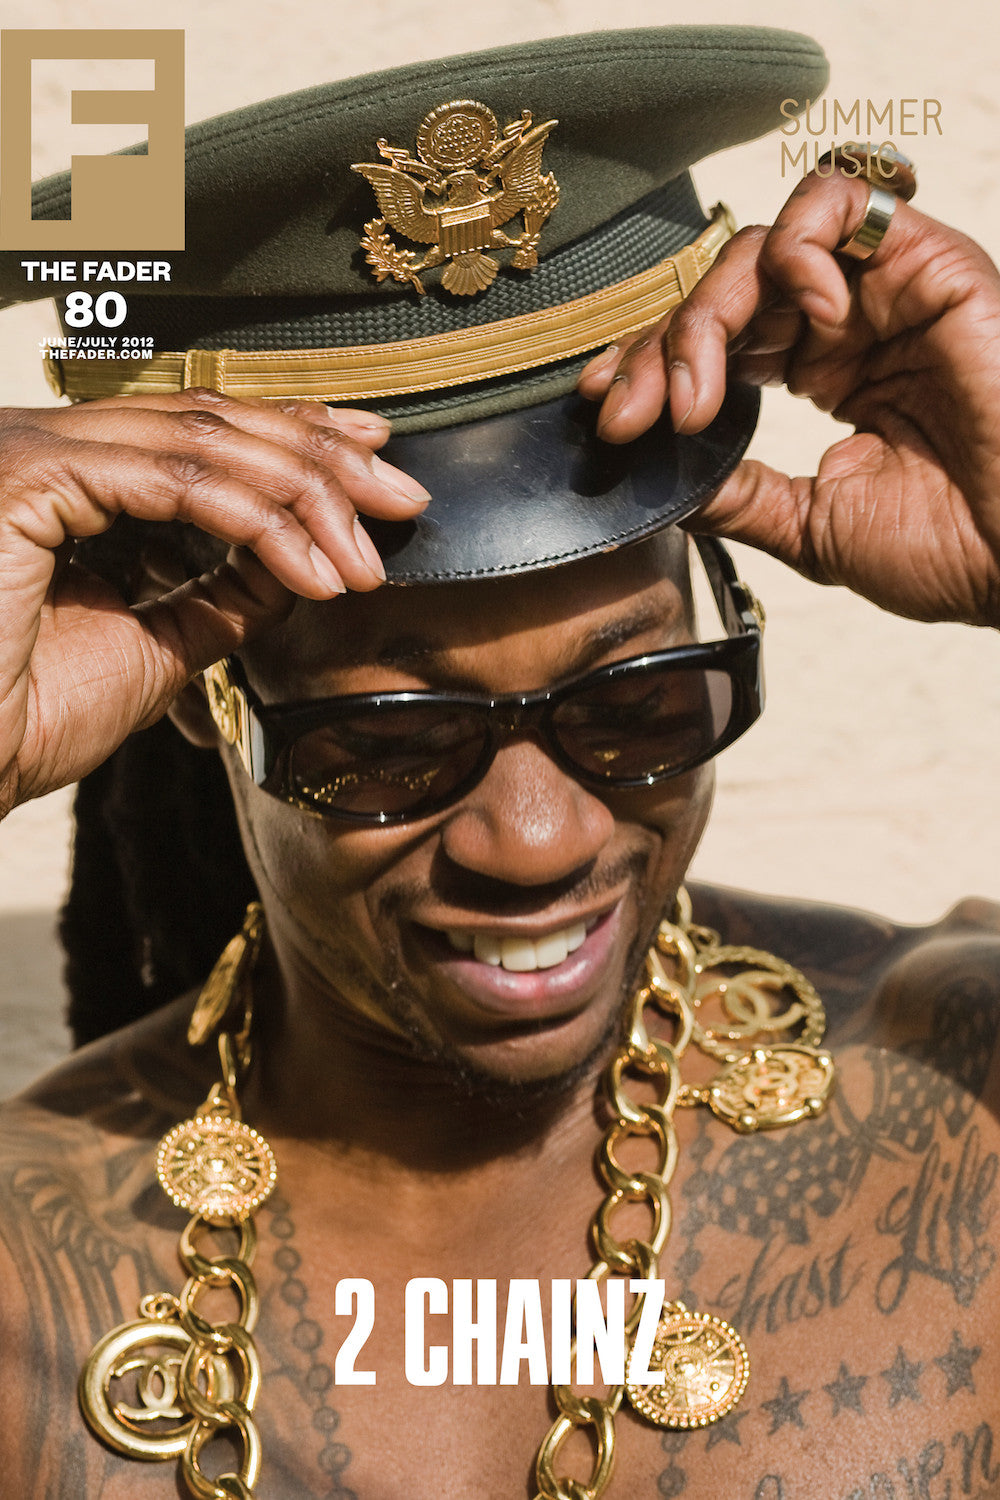 "2 Chainz / The FADER Issue 80 Cover 20"" x 30"" Poster"